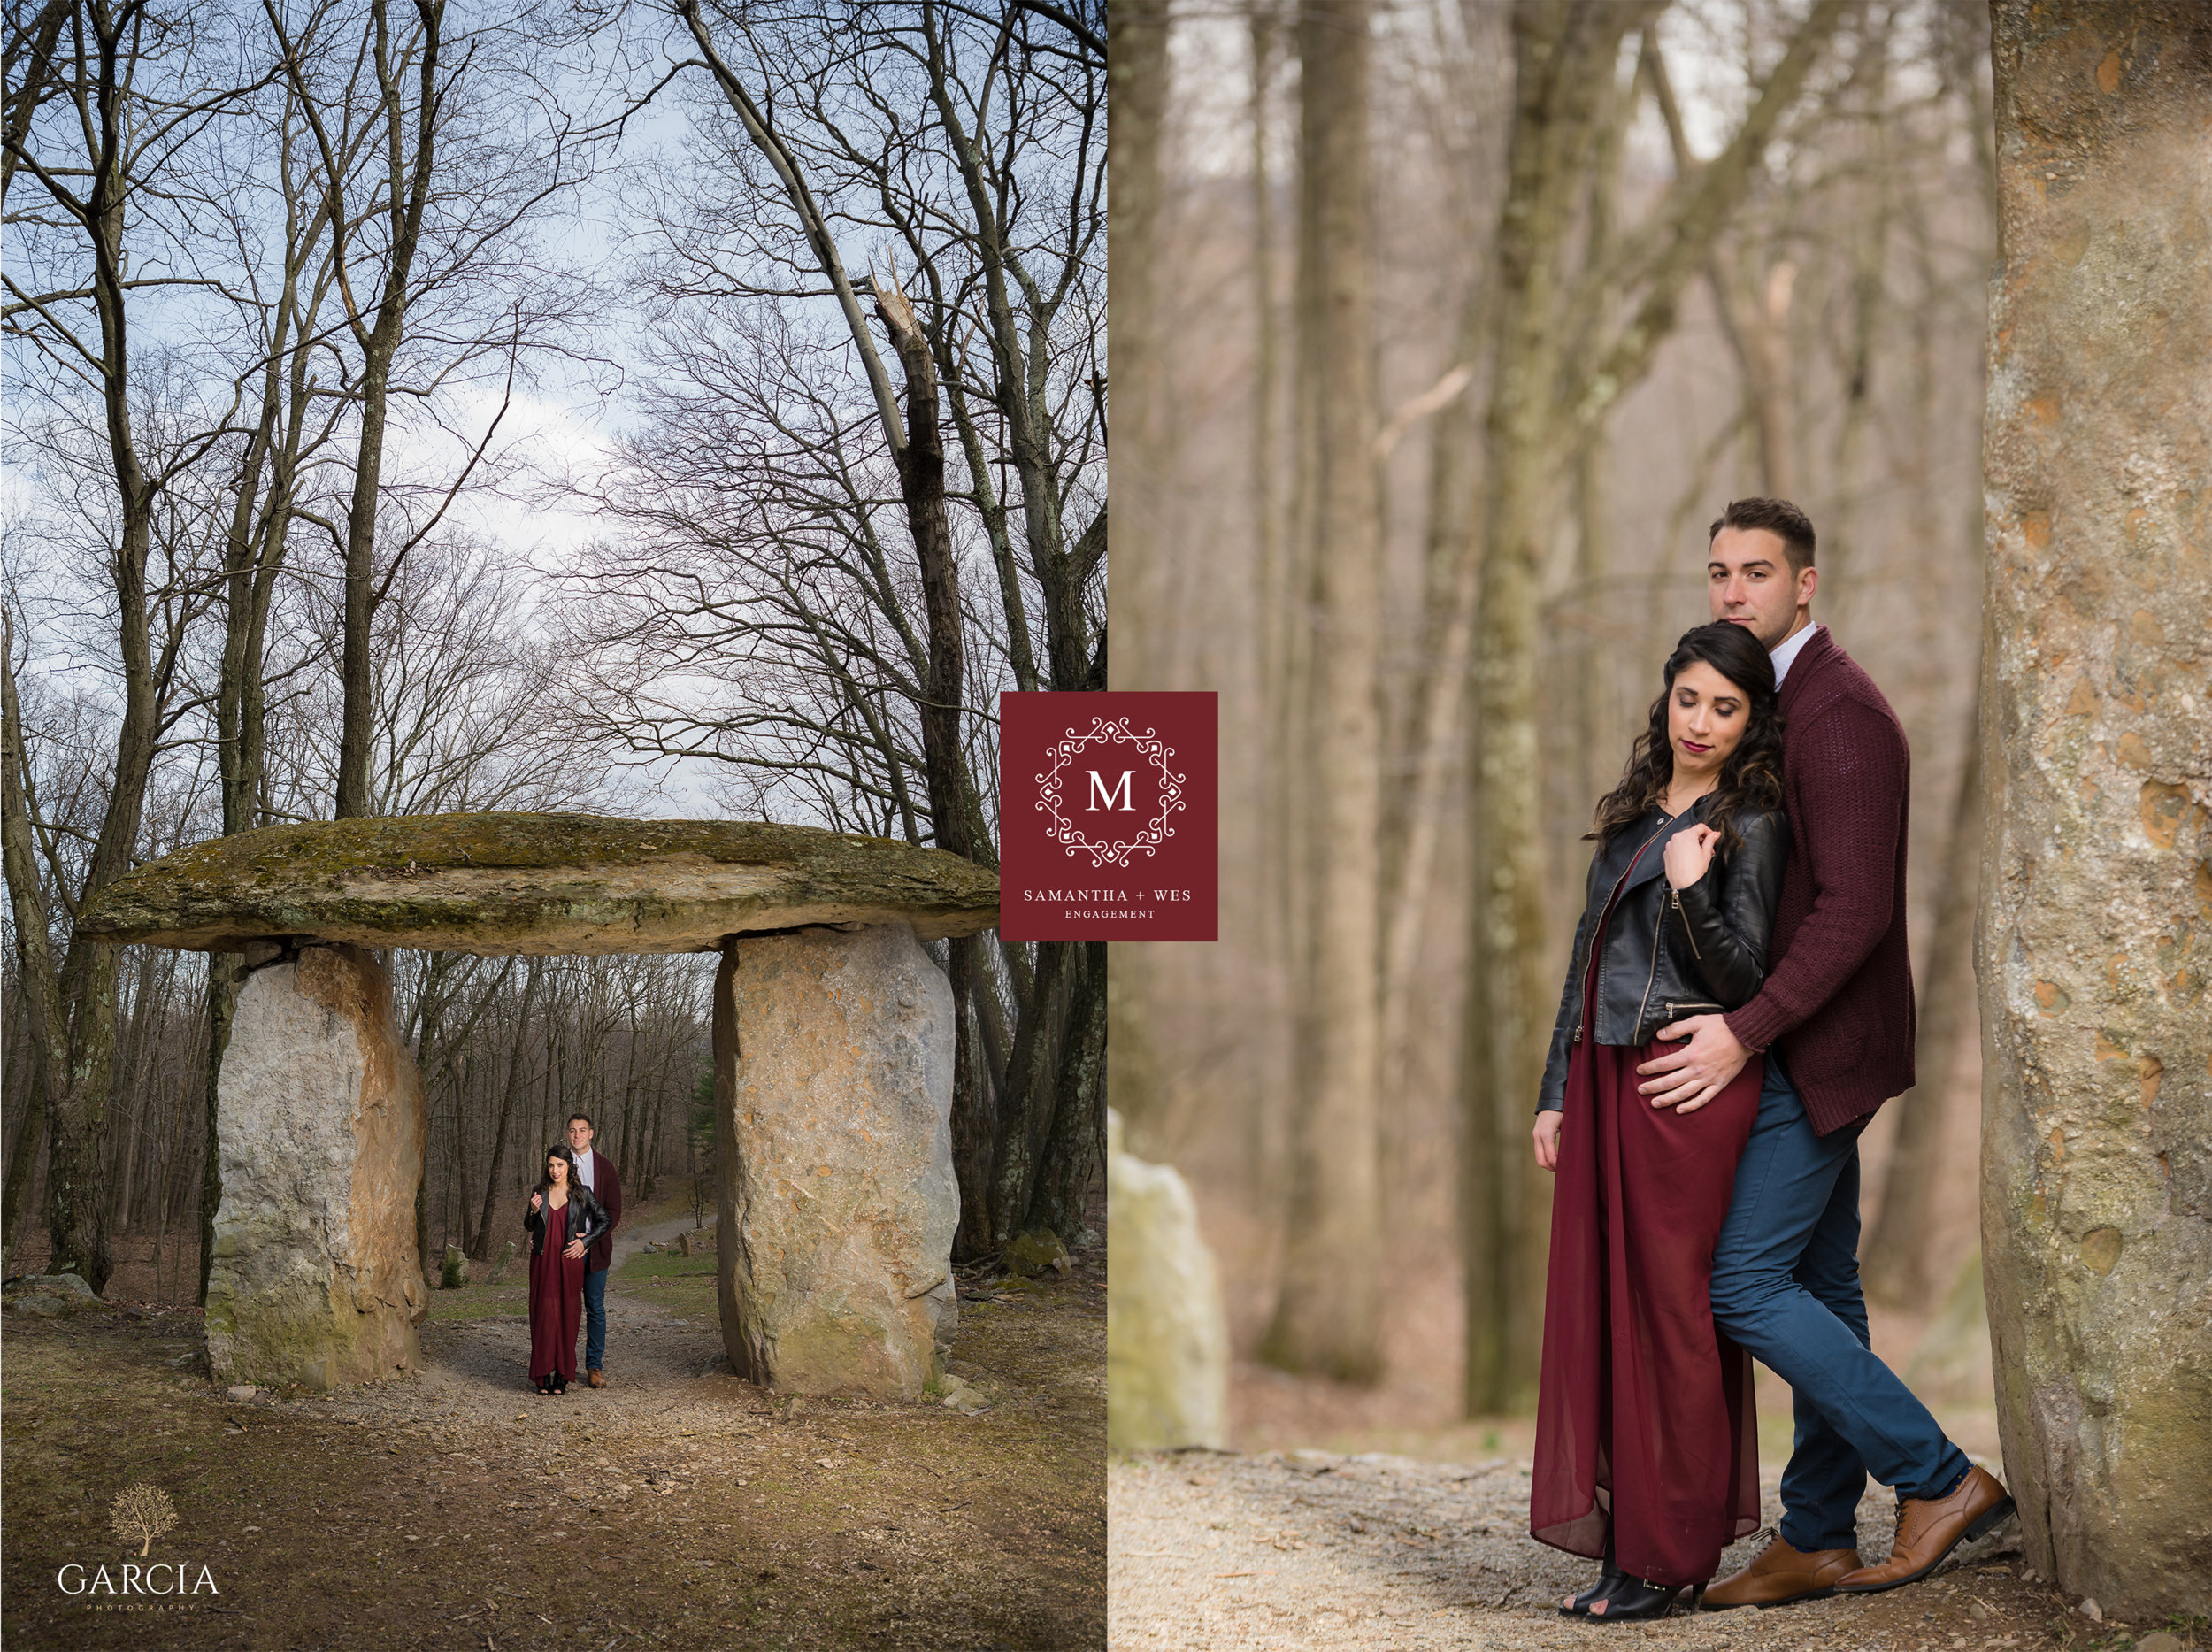 Garcia-Photography-Engagement-Session-Collage-2.png